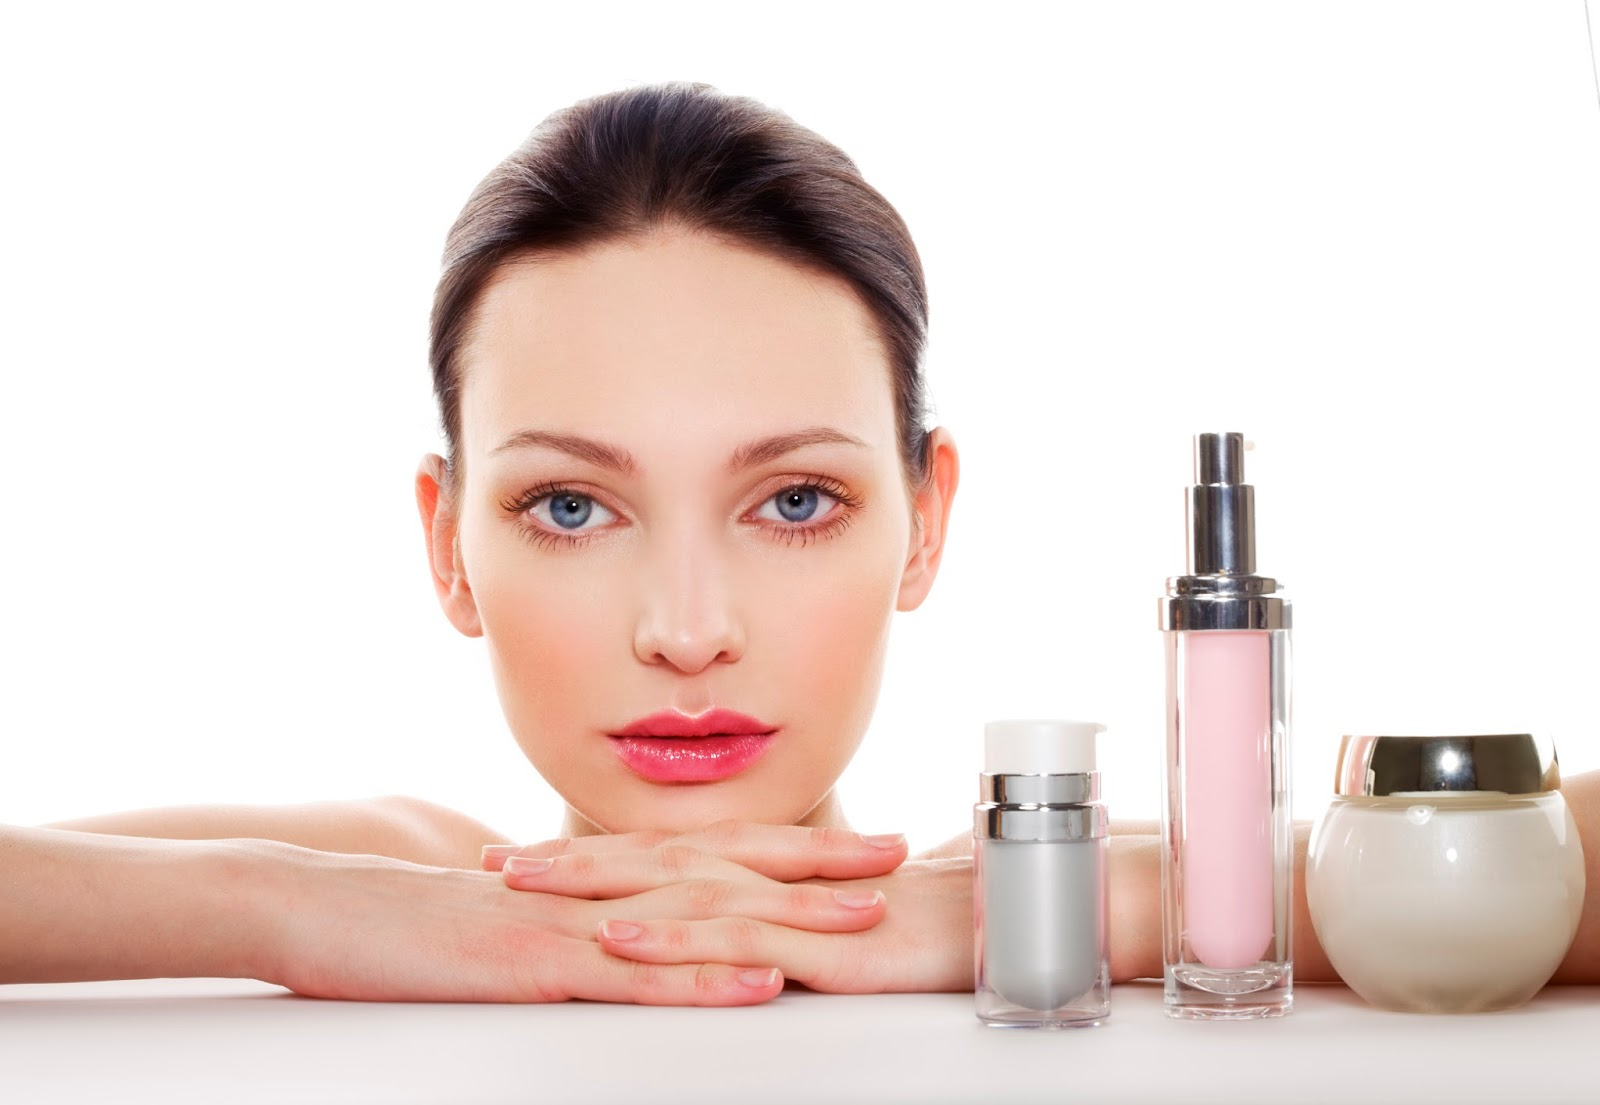 Today's Anti-Aging Industry Skincare Choices